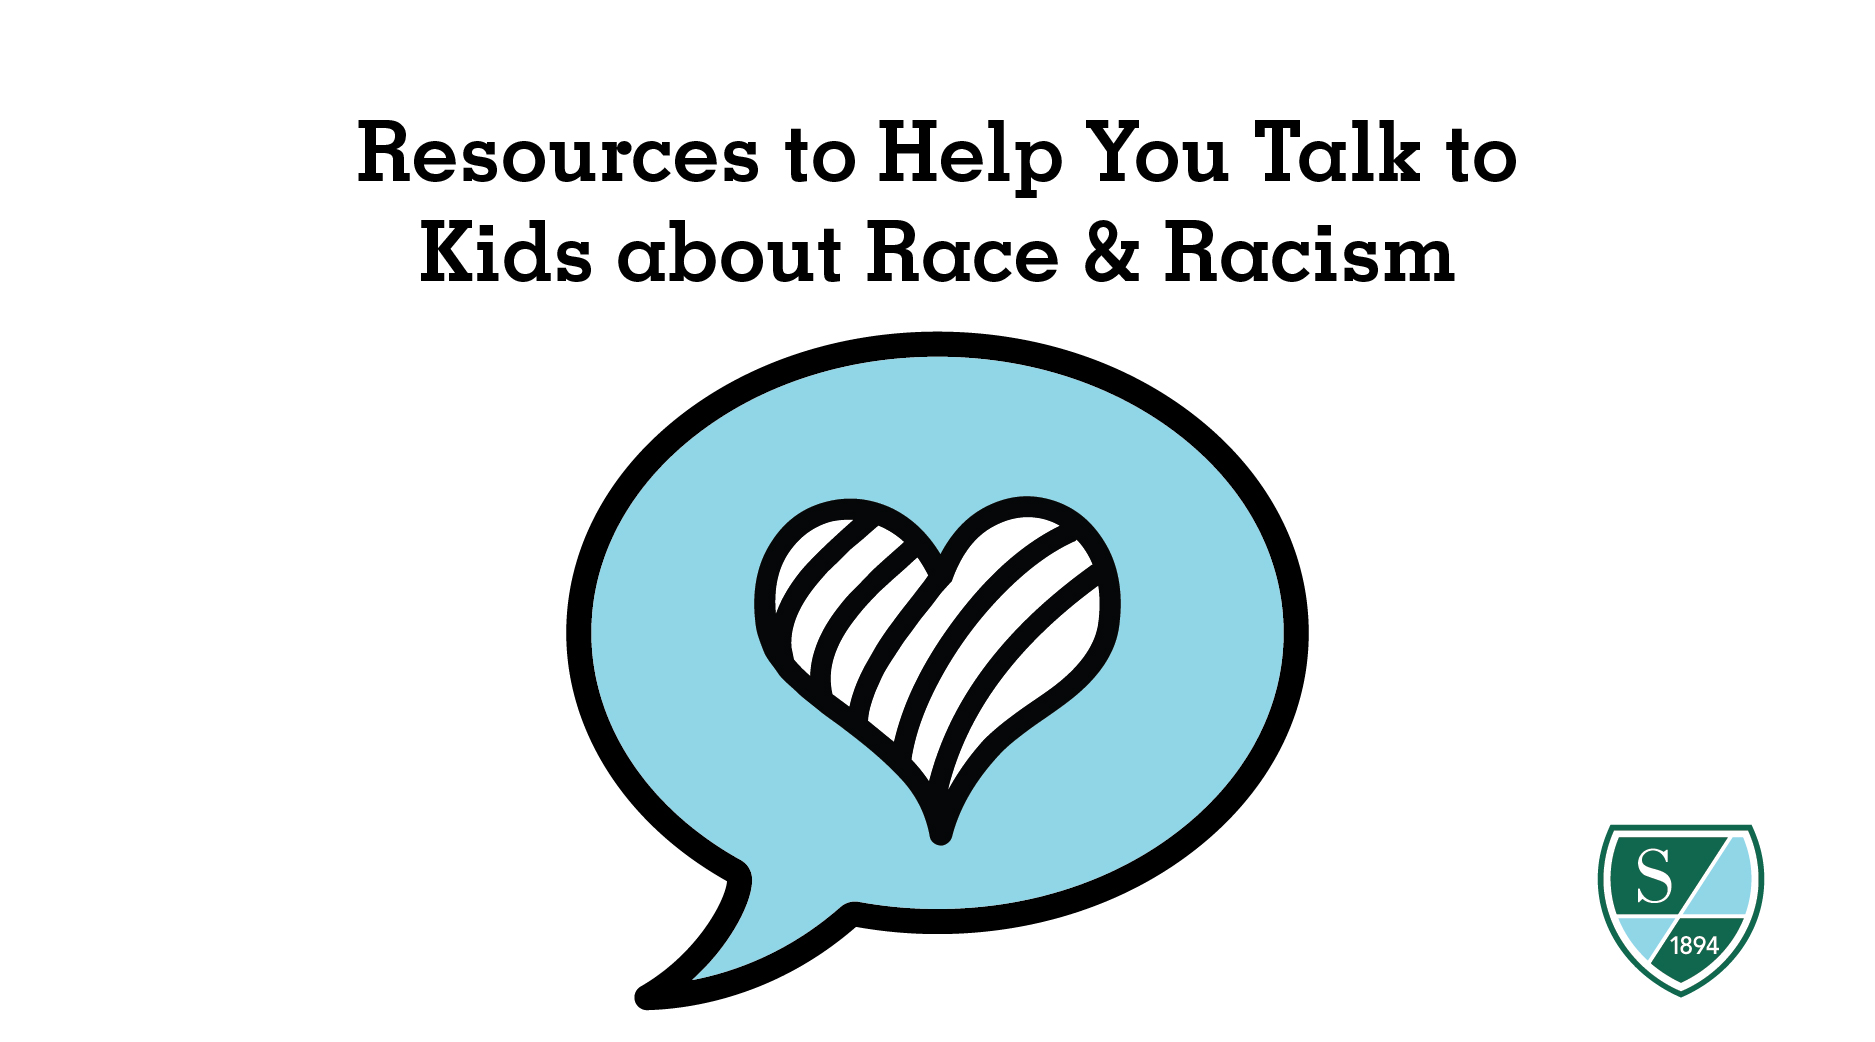 Resources to Help You Talk to Kids about Race & Racism